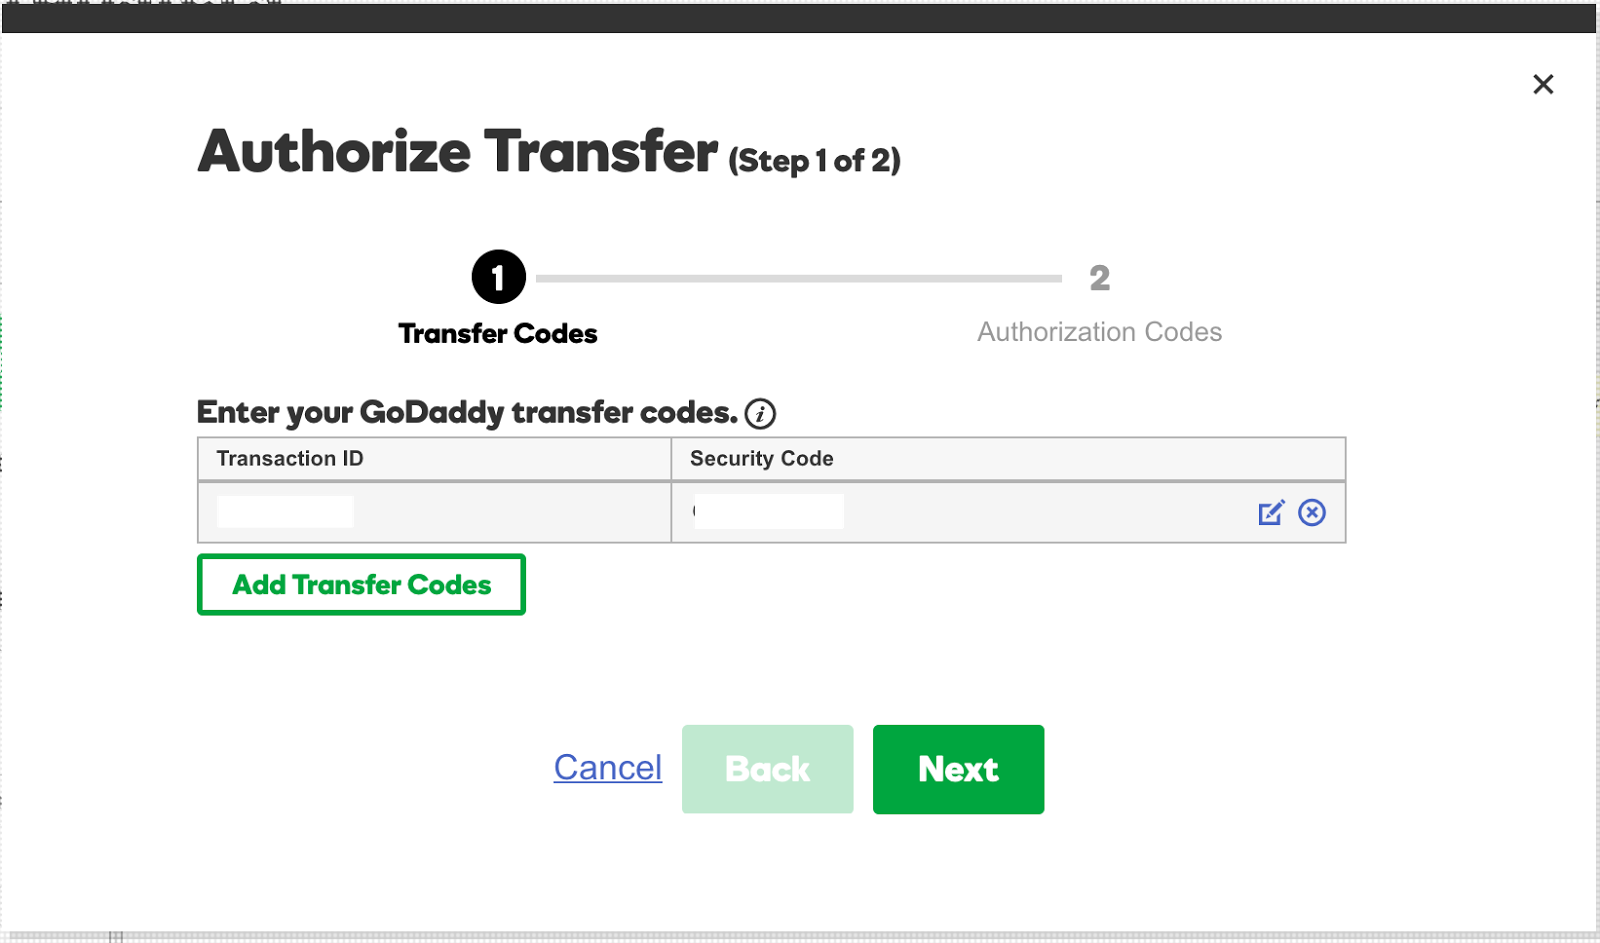 Buy GoDaddy domain transfers for up to of your domain names at once, listing each one on a separate line in our bulk domain transfer tool. If the extension you'd like to transfer isn't listed, you can't transfer that domain name to us.